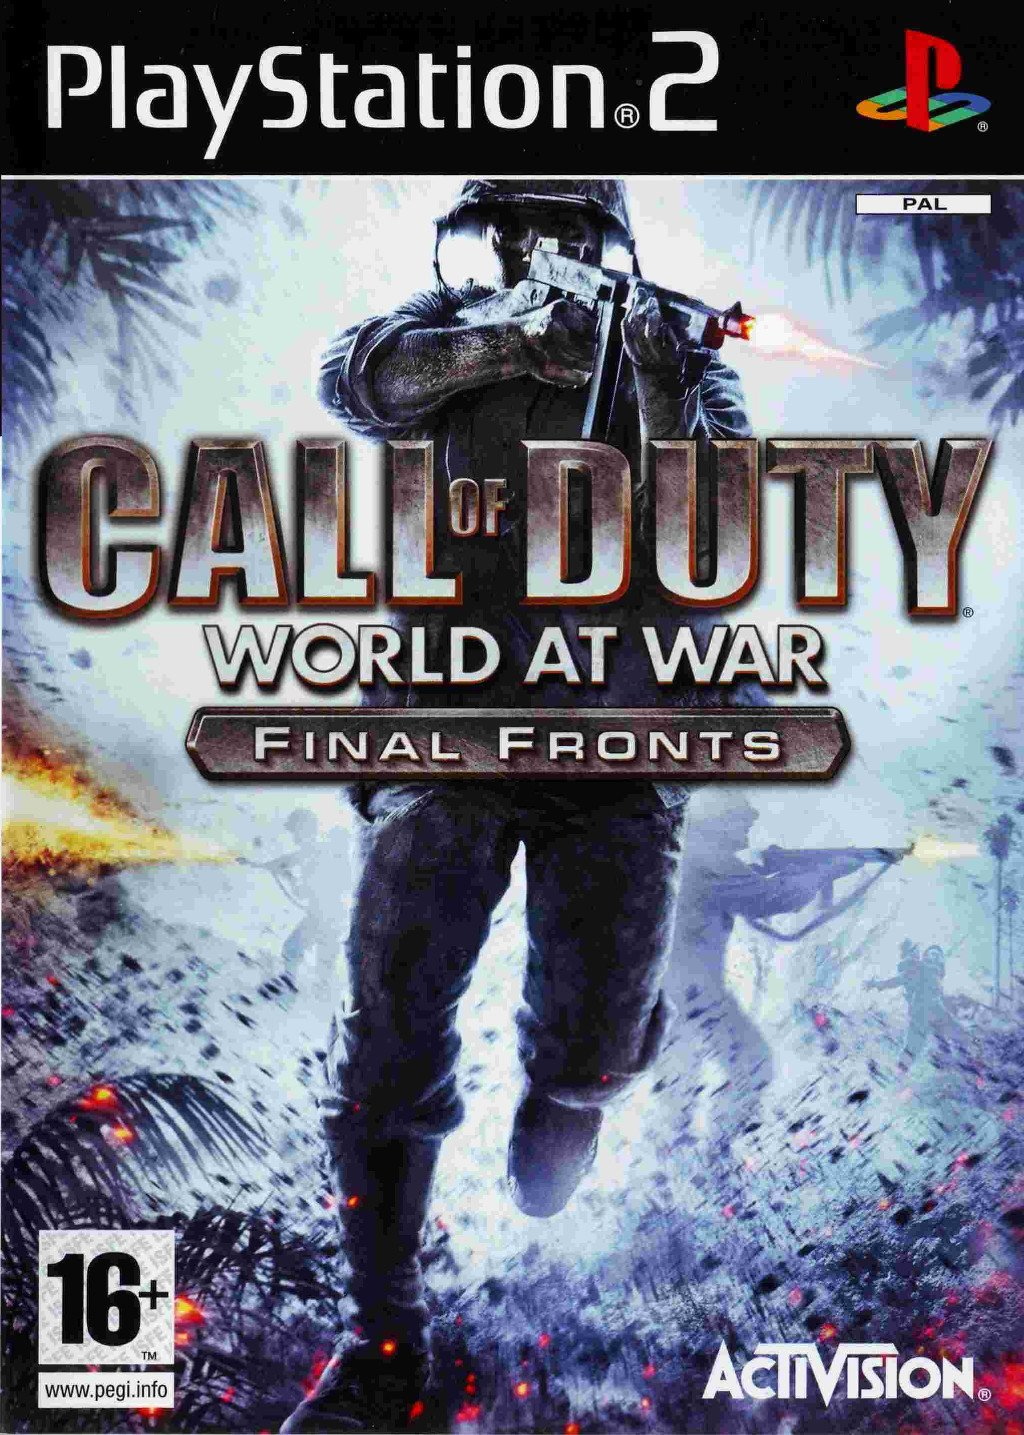 Call of Duty World at War Final Fronts.jpg